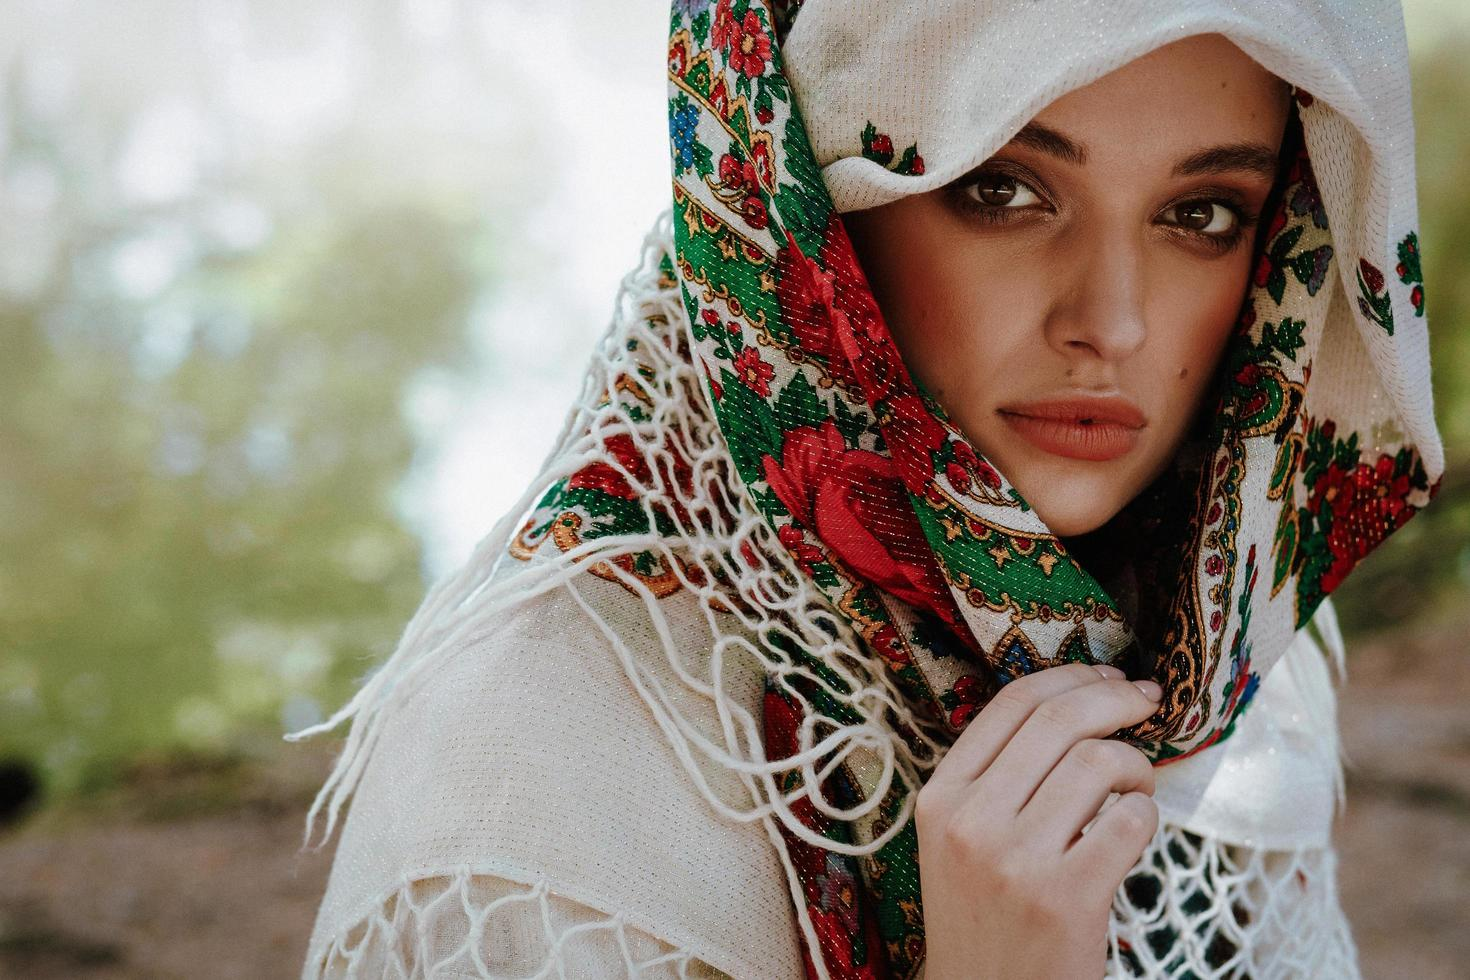 Portrait of a young girl in a Ukrainian ethnic dress photo